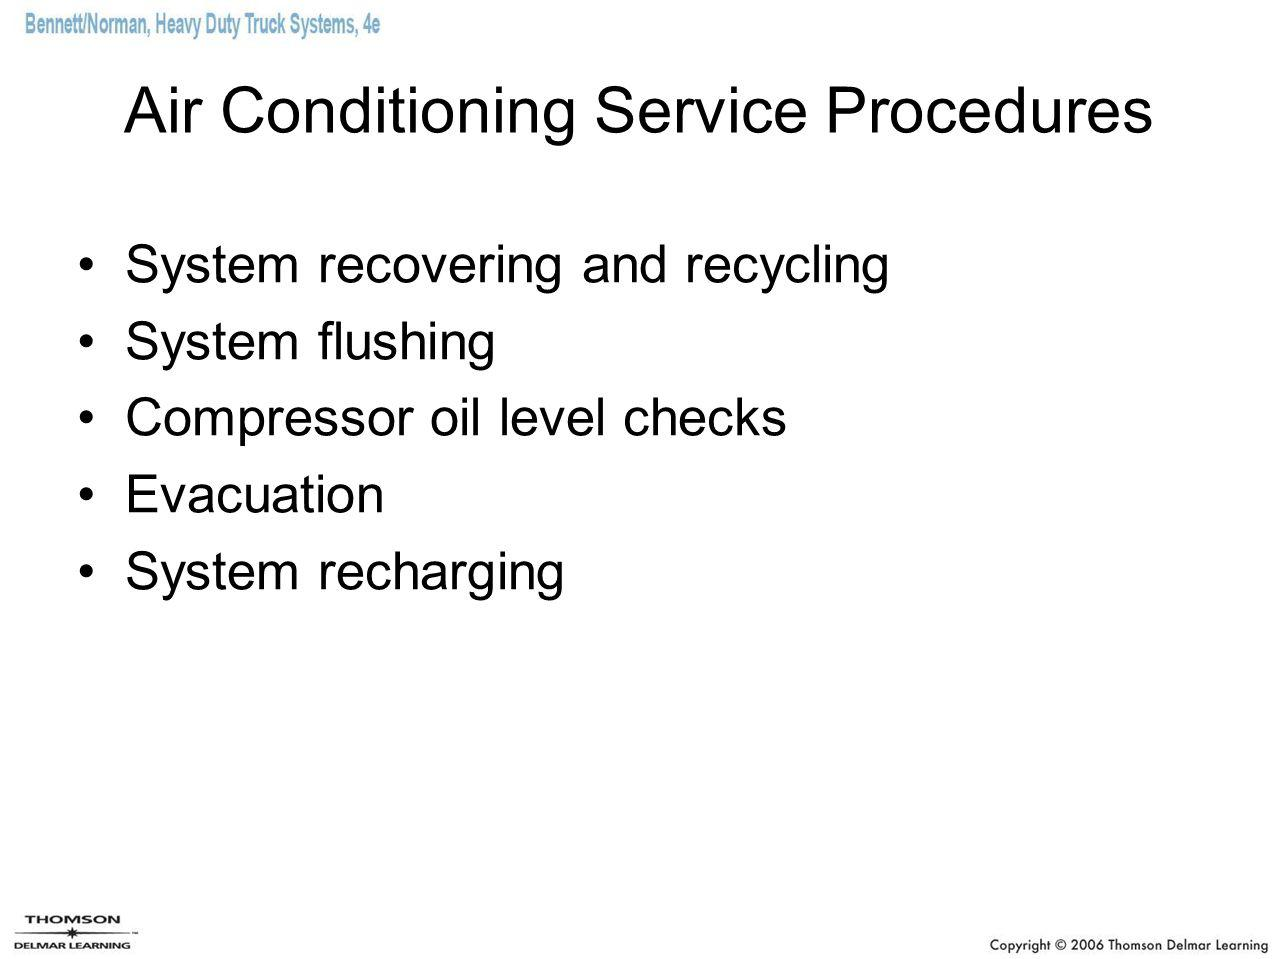 Air Conditioning Service Procedures